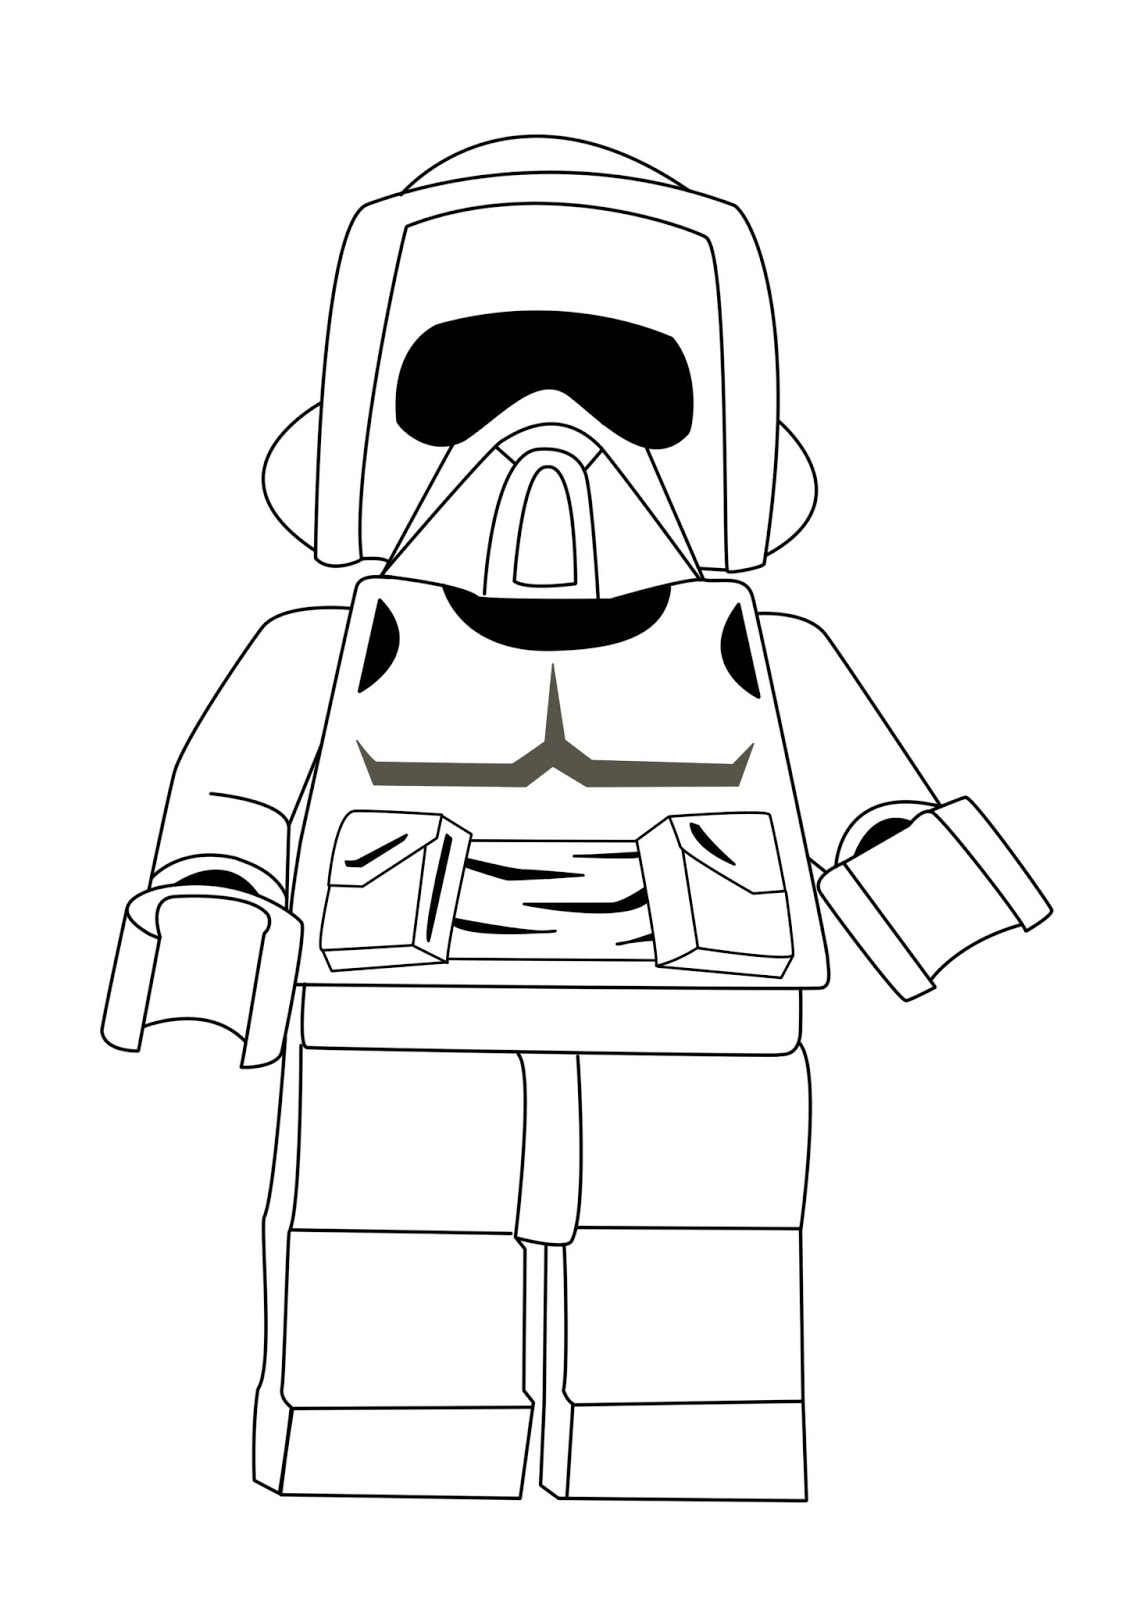 lego star wars printable coloring pages lego star wars coloring pages to download and print for free coloring star wars lego printable pages